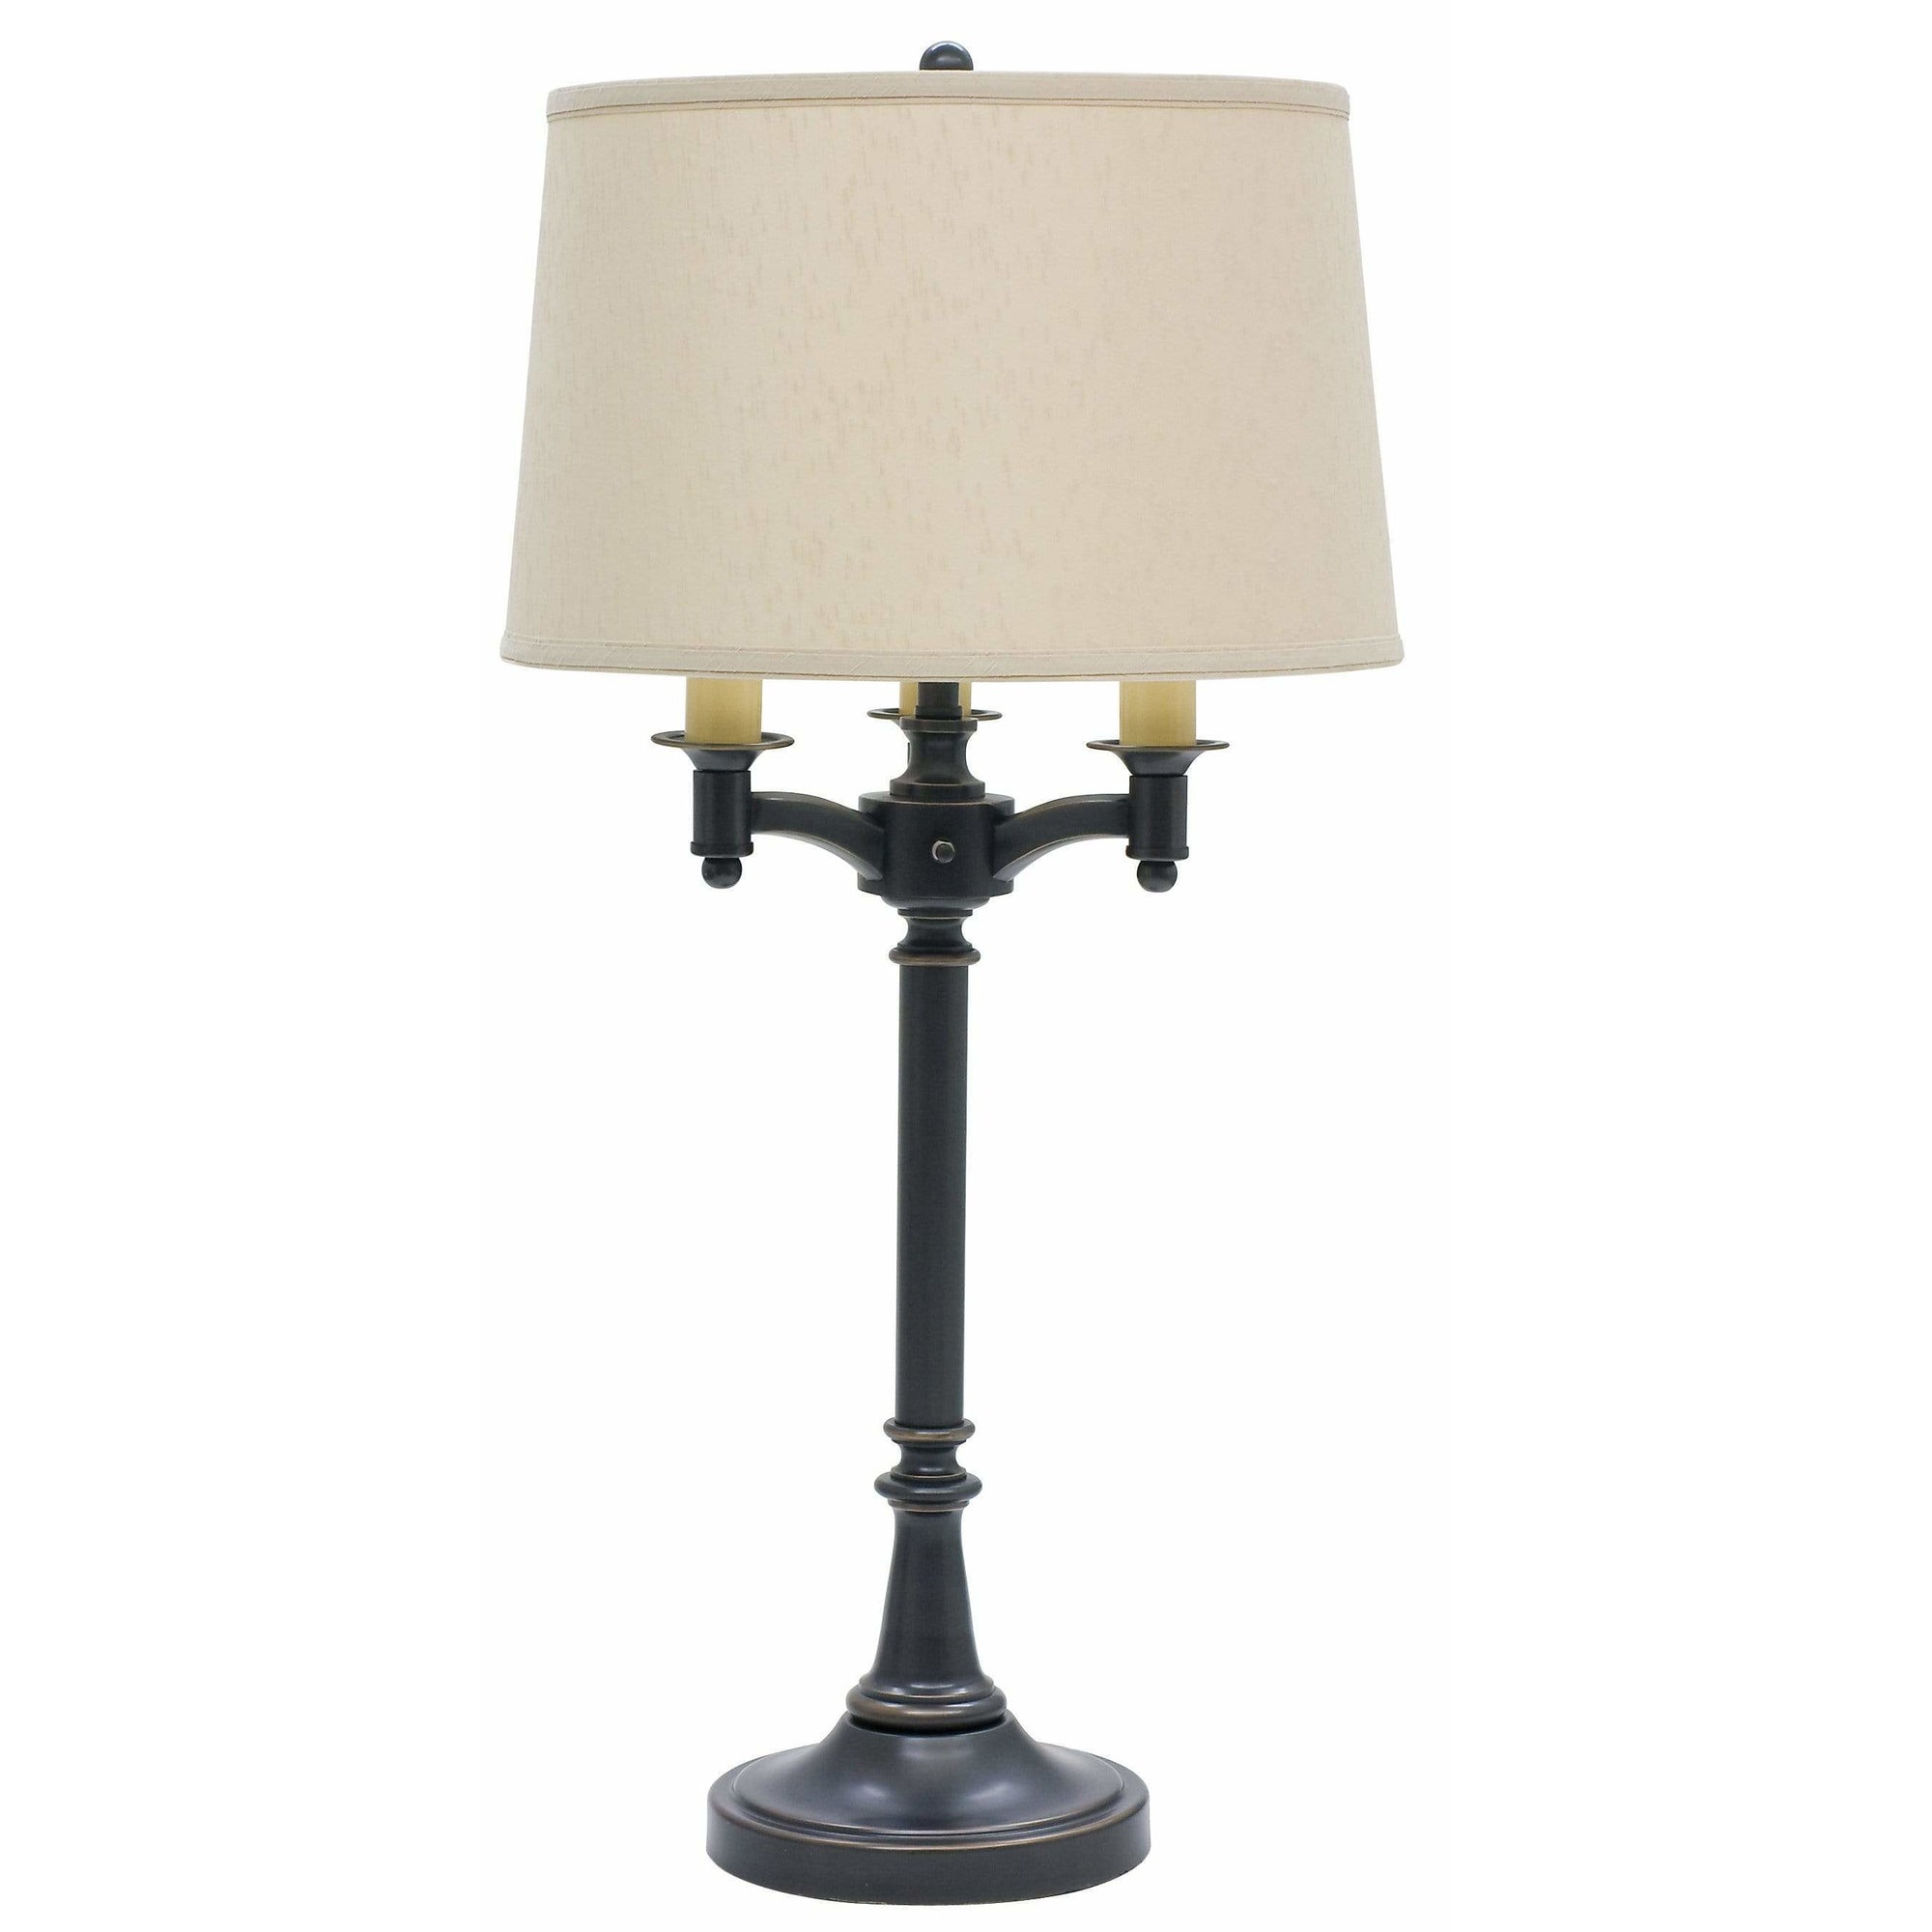 House Of Troy Table Lamps Lancaster Six-Way Table Lamp by House Of Troy L850-OB